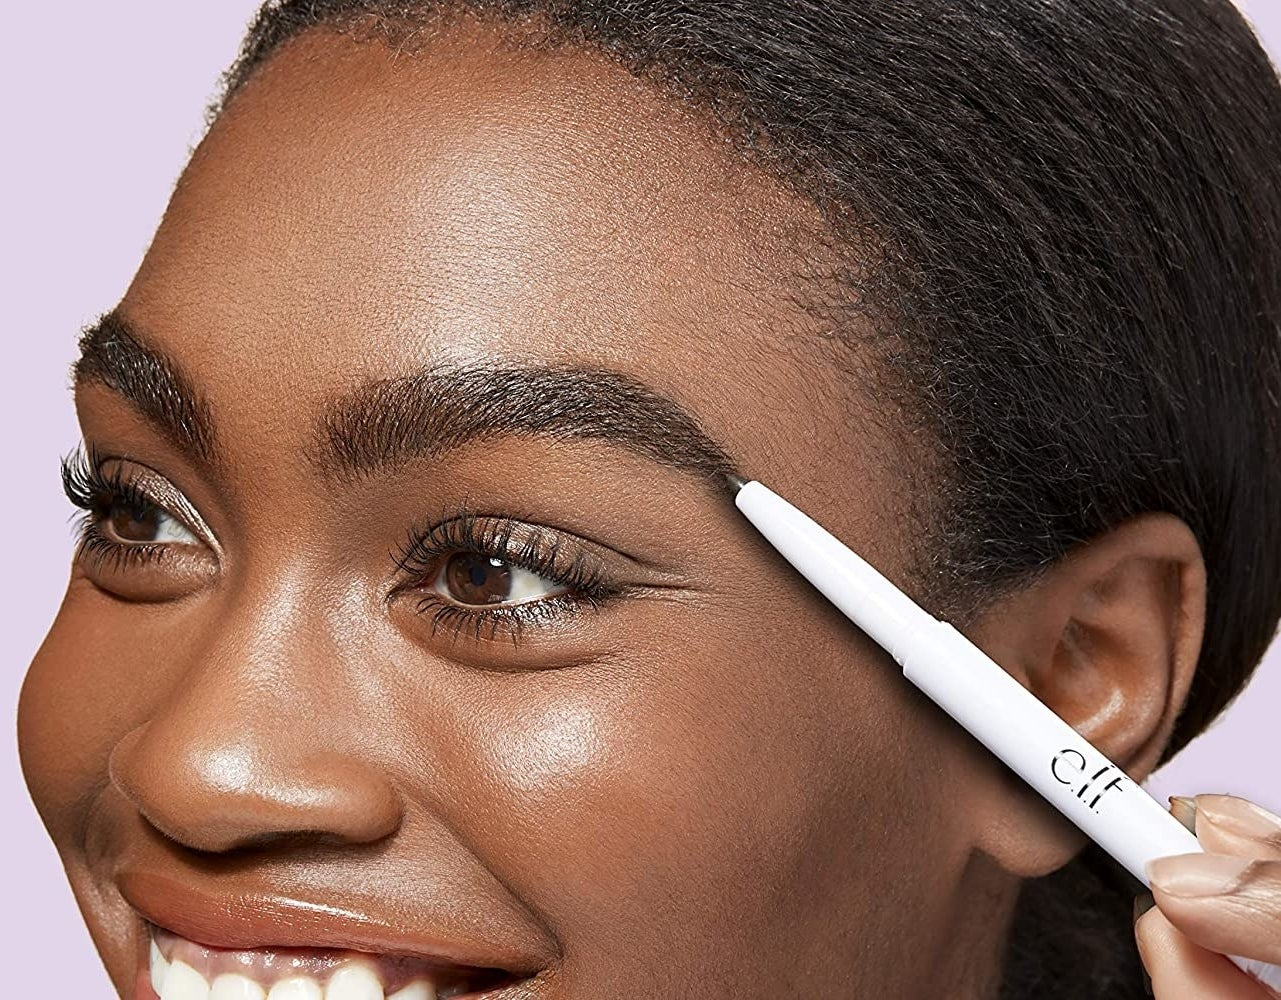 A person using a brow pencils to fill in their brows